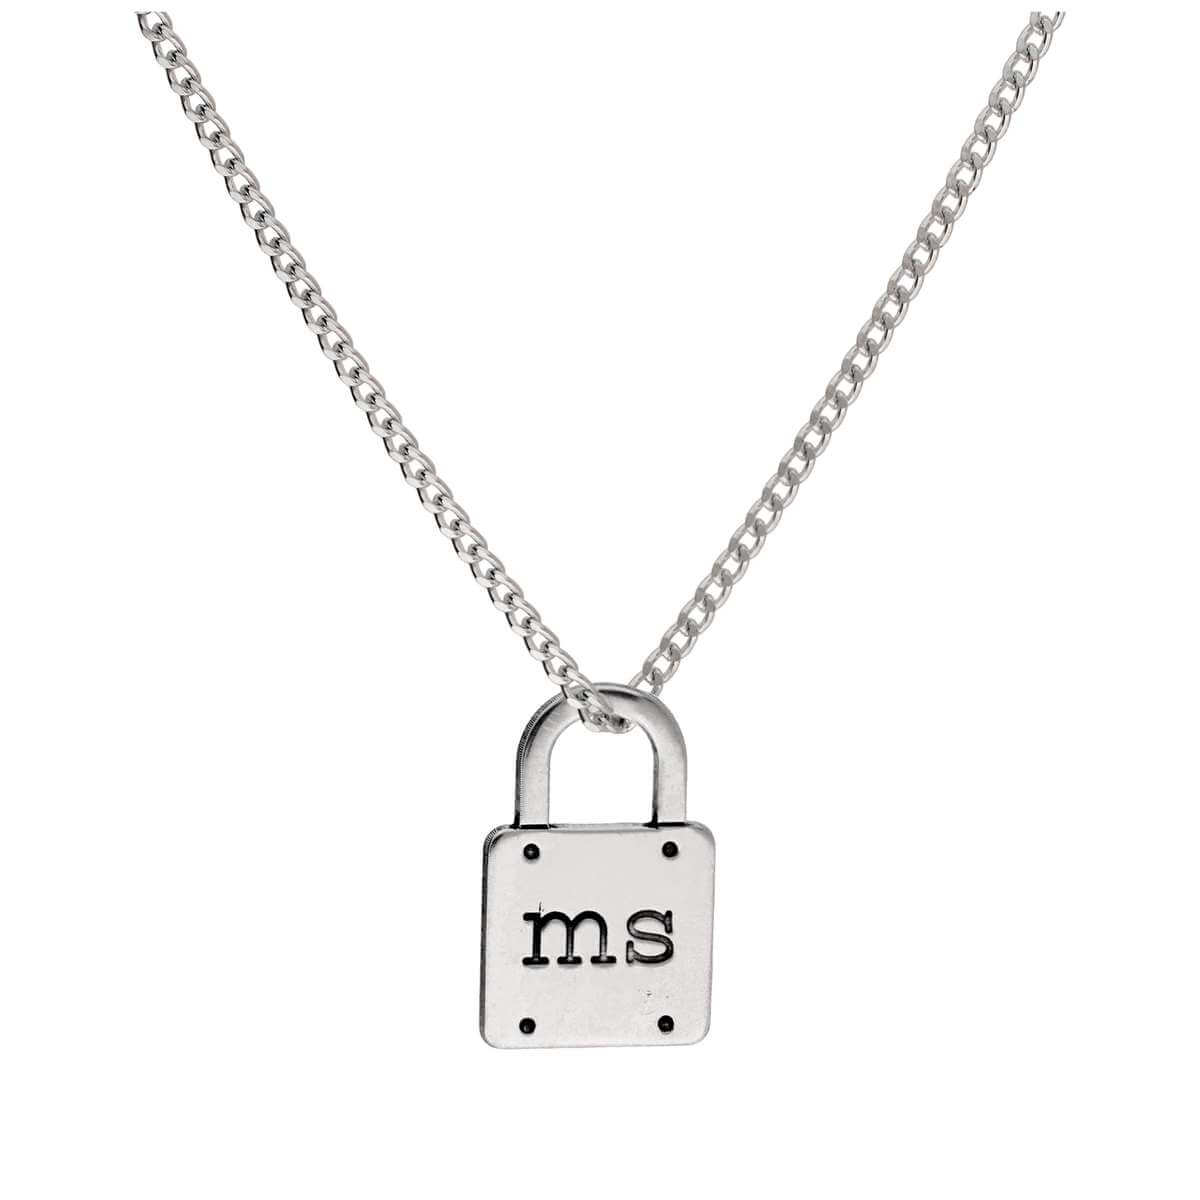 Bespoke Sterling Silver Initials Padlock Necklace 16-28 Inches